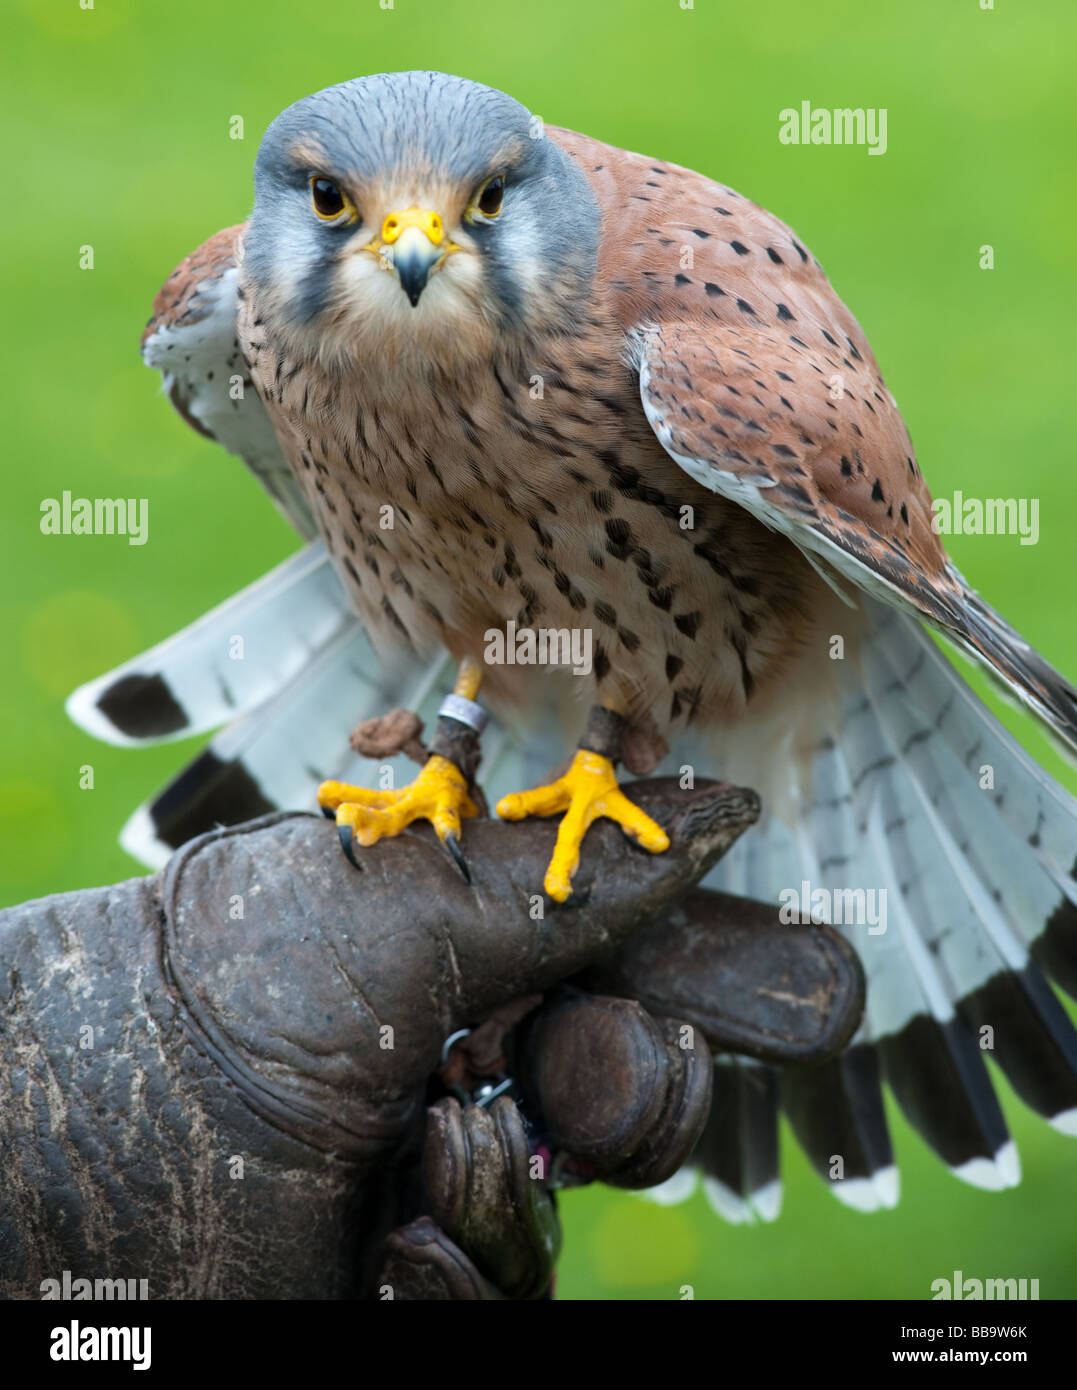 Falcon display at Linlithgow Palace, Scotland - Stock Image